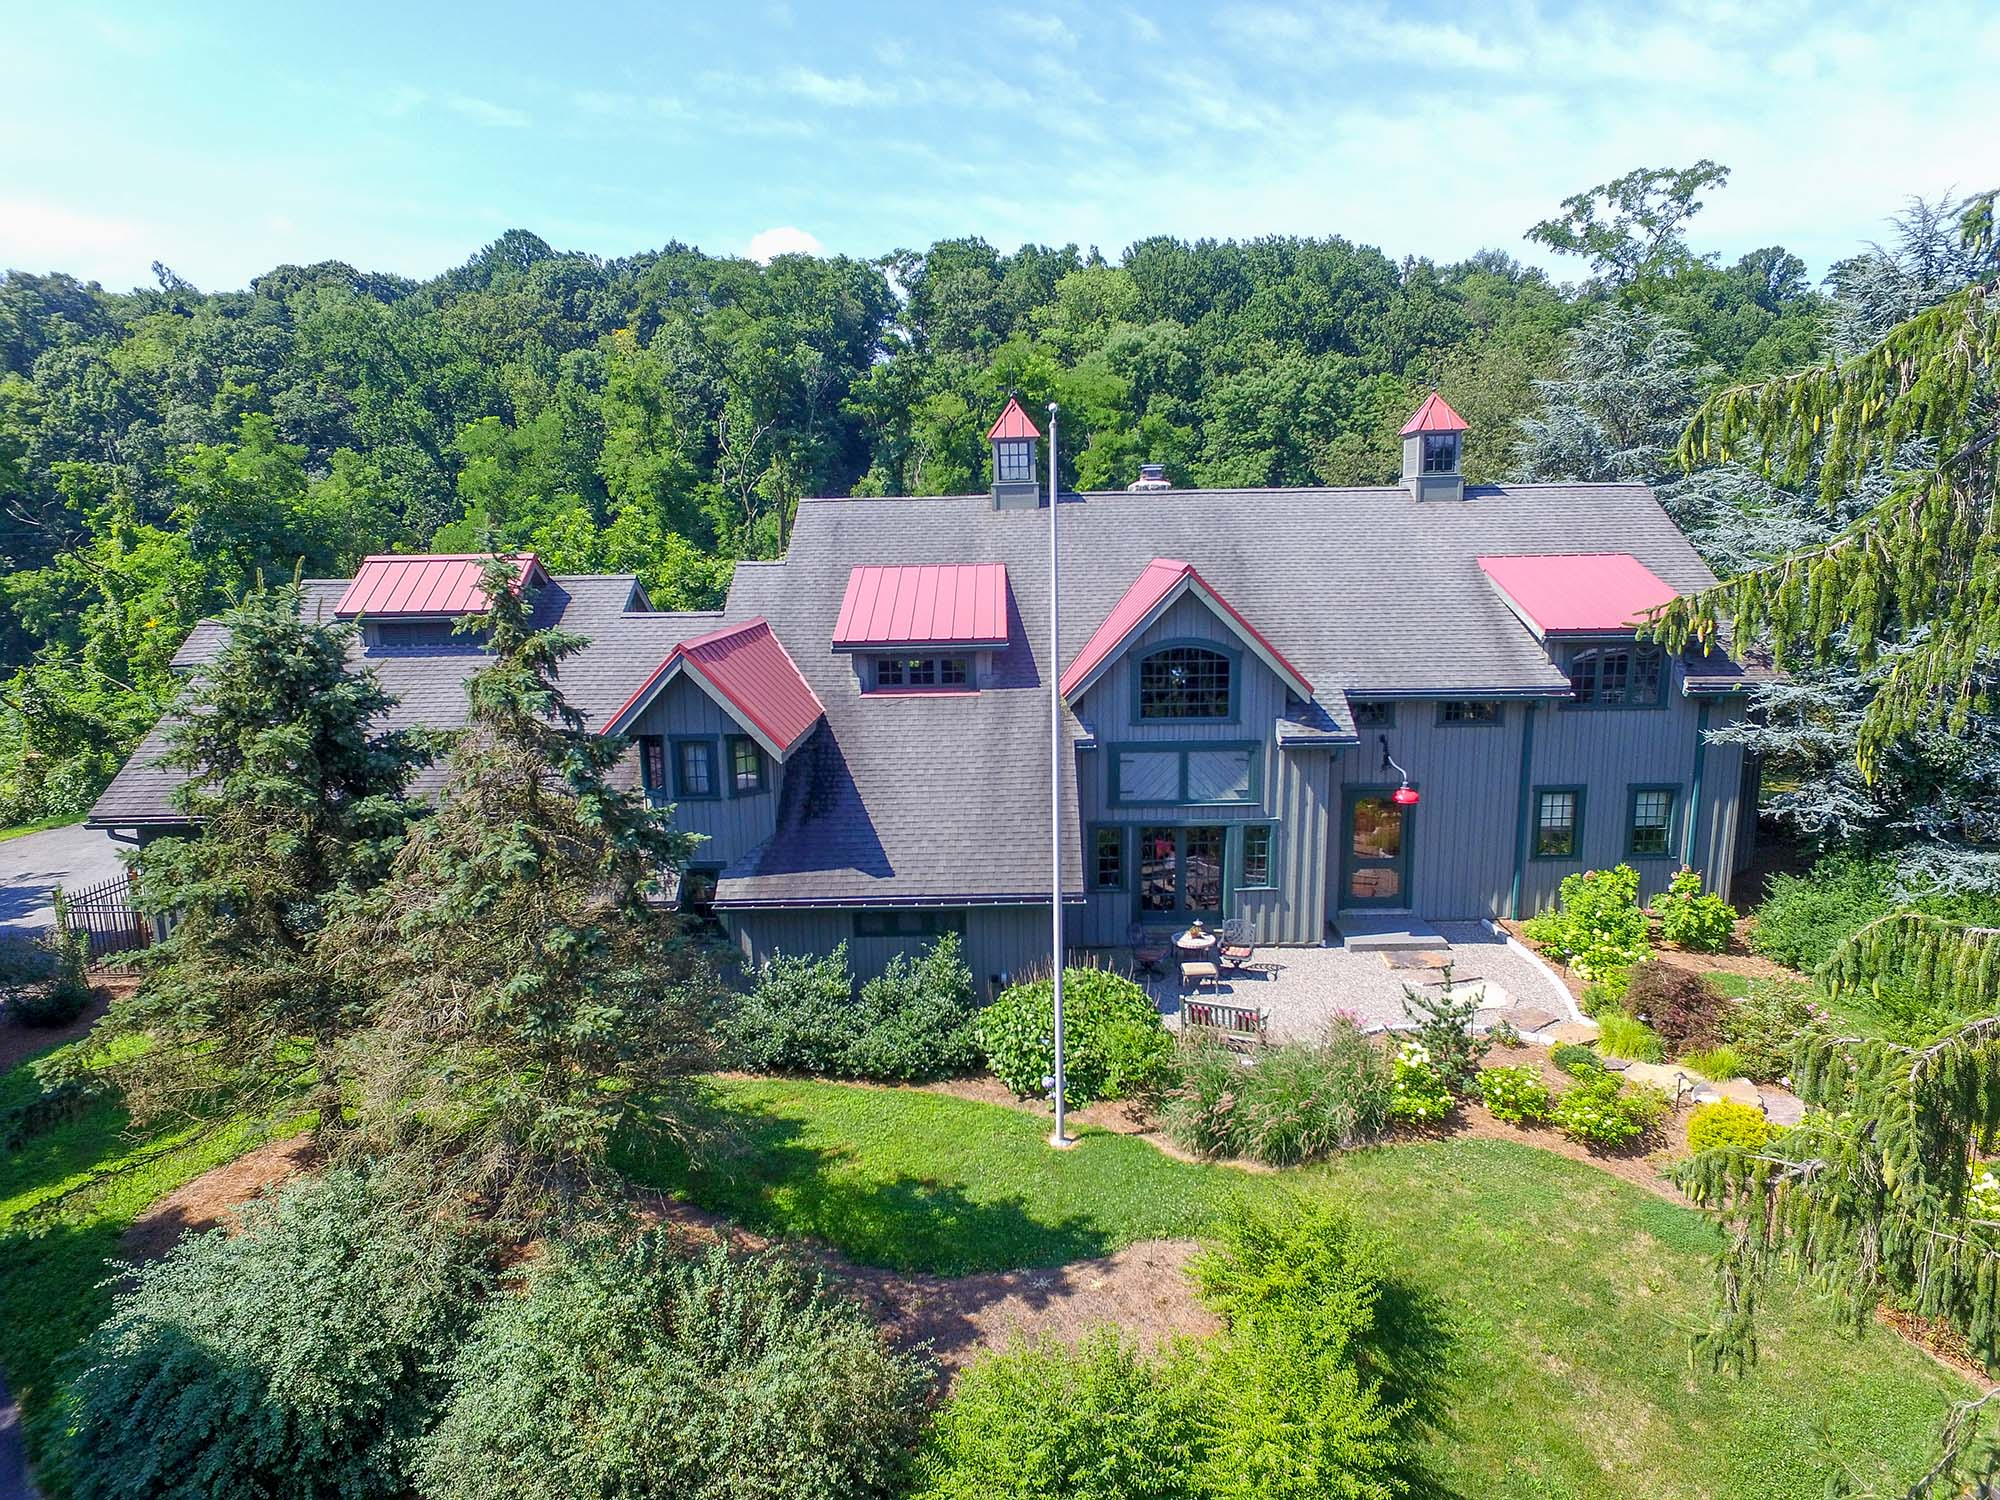 Maison unifamiliale pour l Vente à 73 Willow Creek Wrightsville, Pennsylvanie 17368 États-Unis